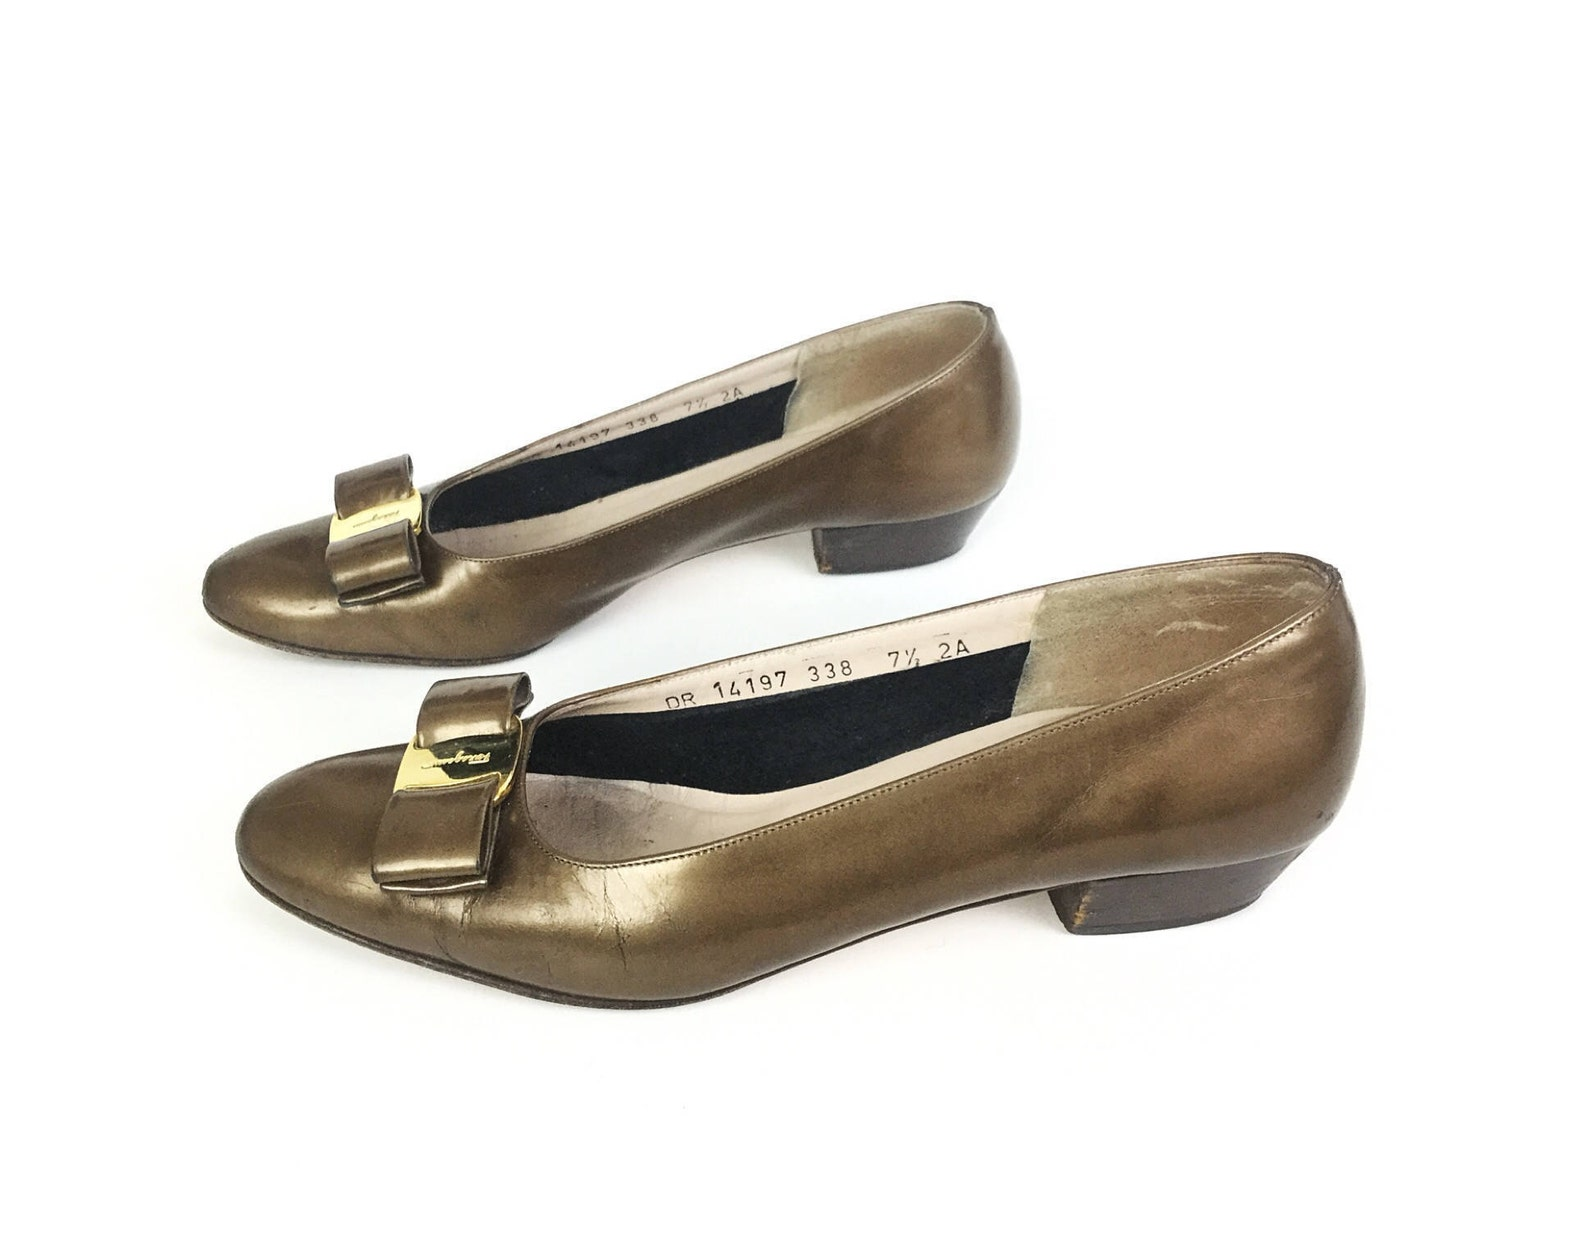 size ferragamo 7.5 shoes pewter gold bronze metallic bow vara vintage 7 low heel pump ballet flat designer